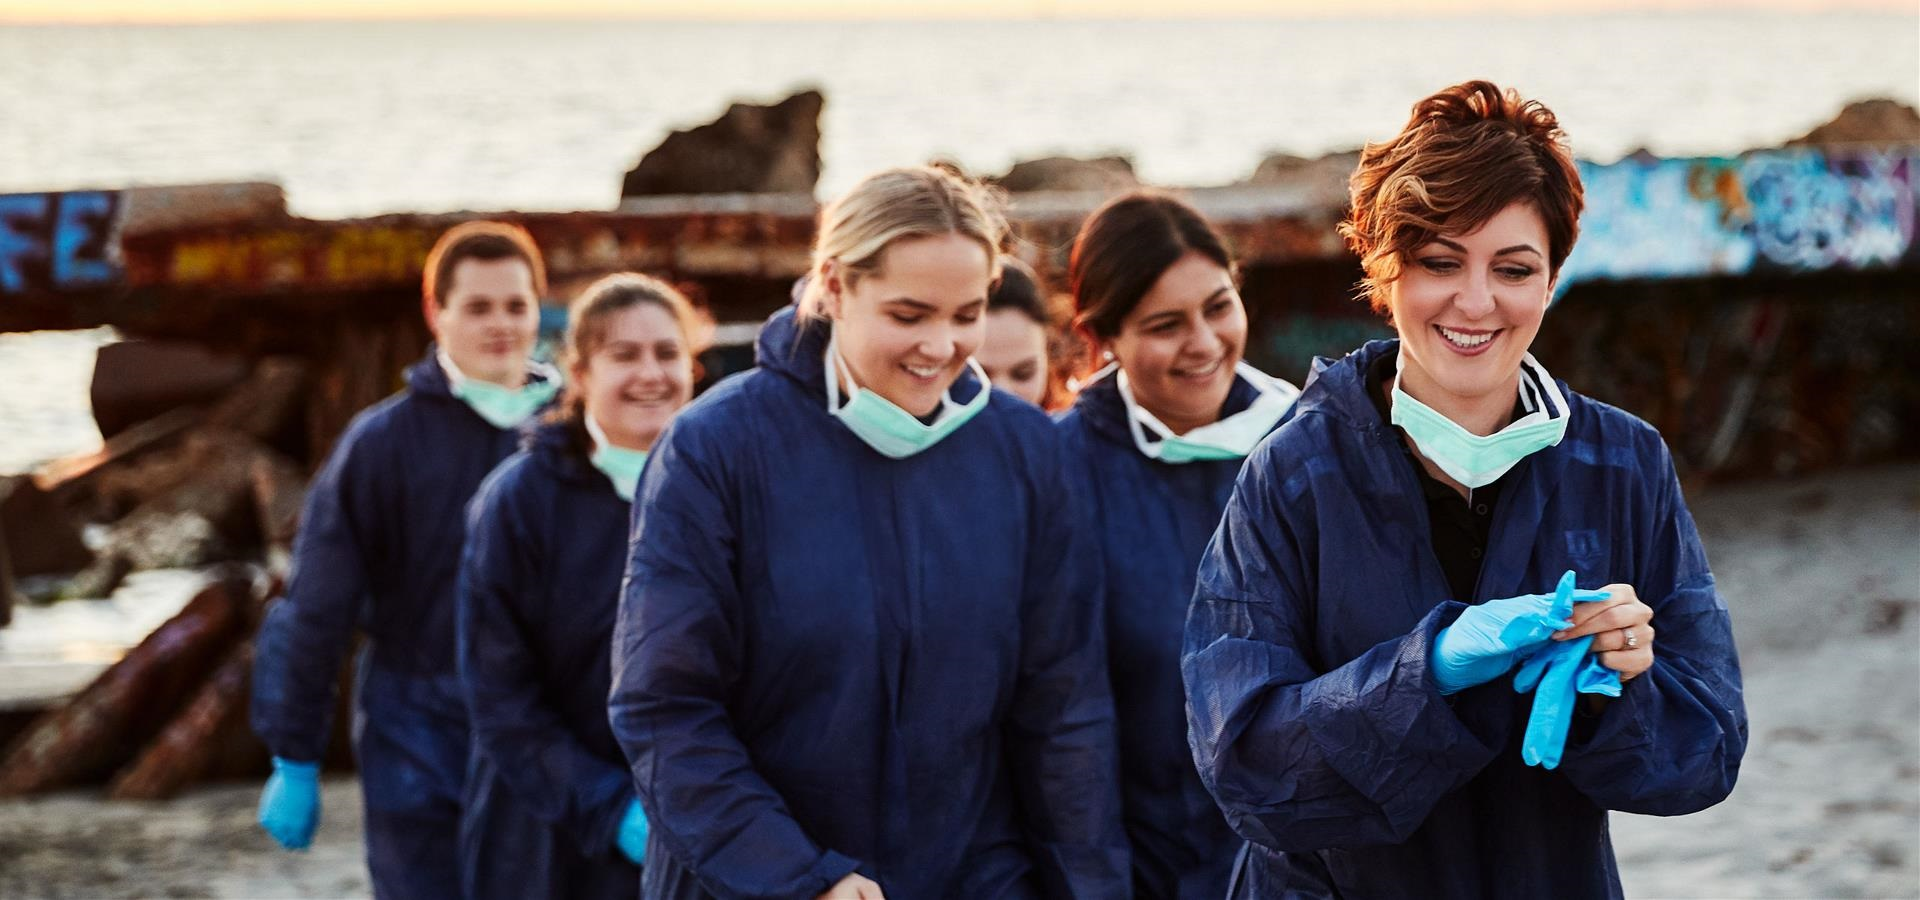 Paola Magni and her students wearing blue hazard suit